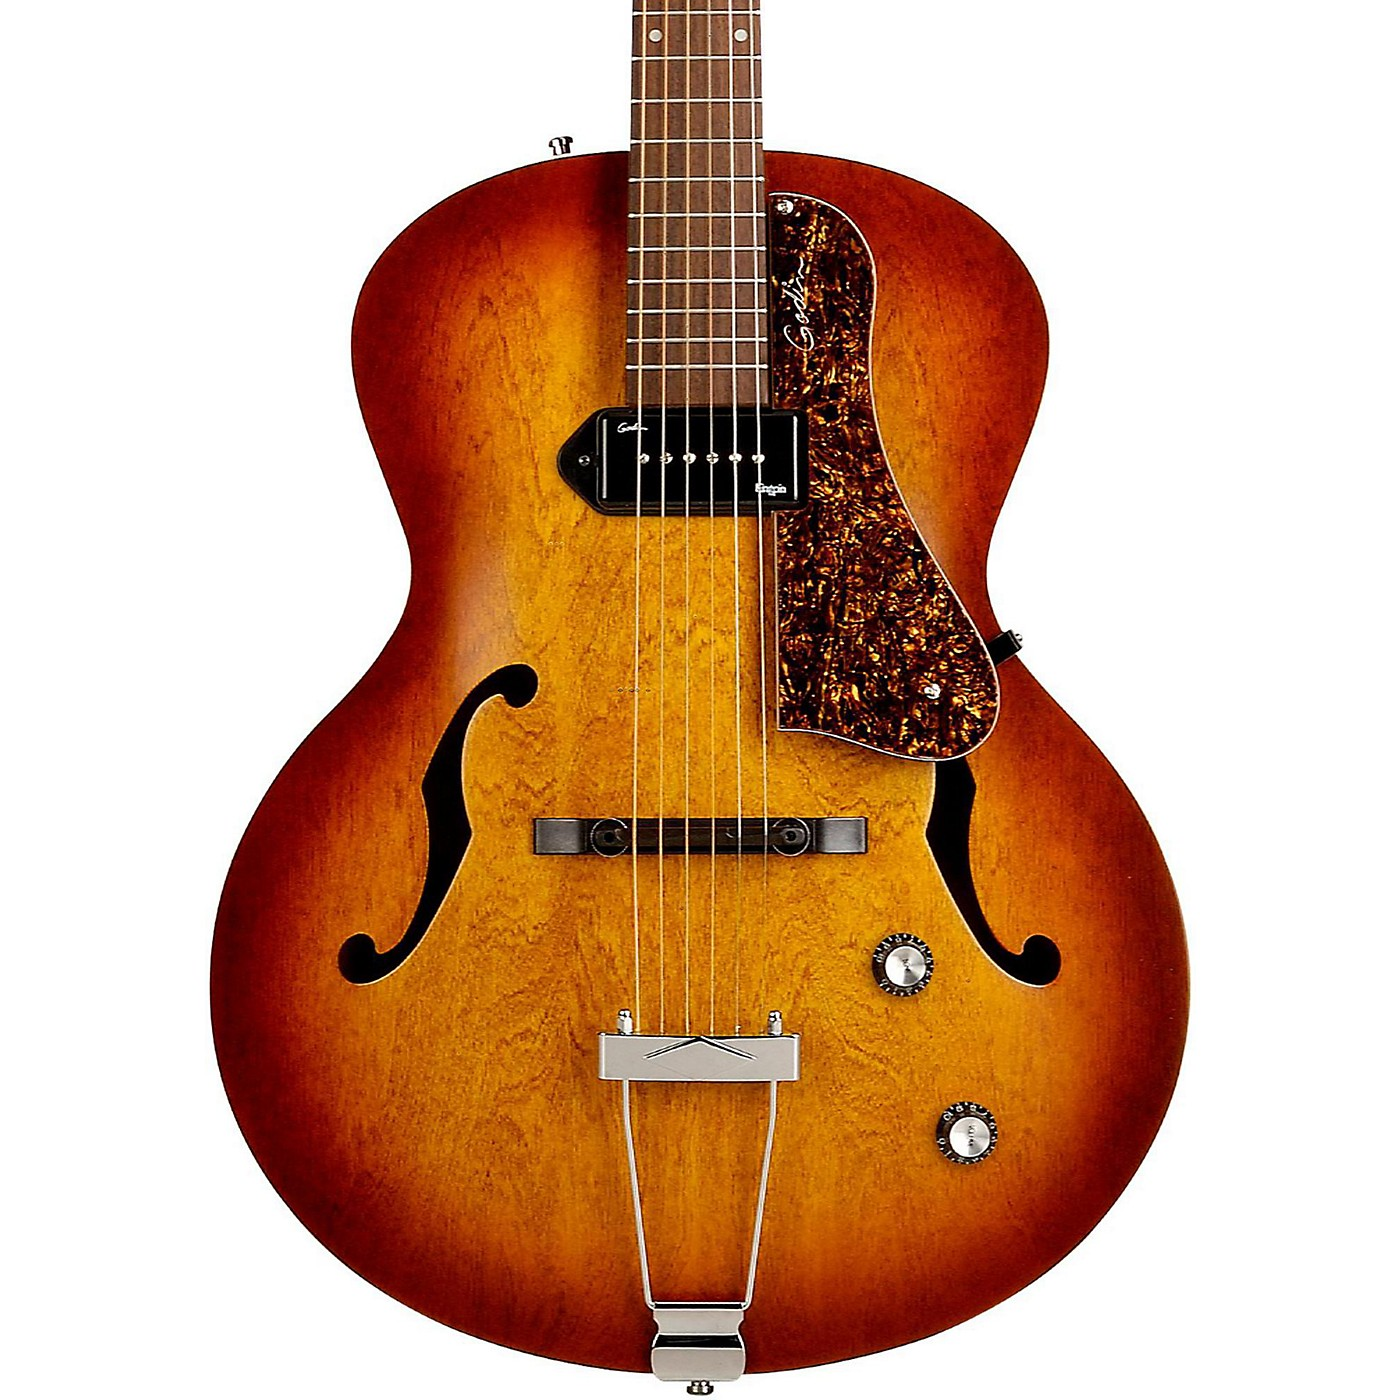 Godin 5th Avenue Kingpin Archtop Hollowbody Electric Guitar With P-90 Pickup thumbnail